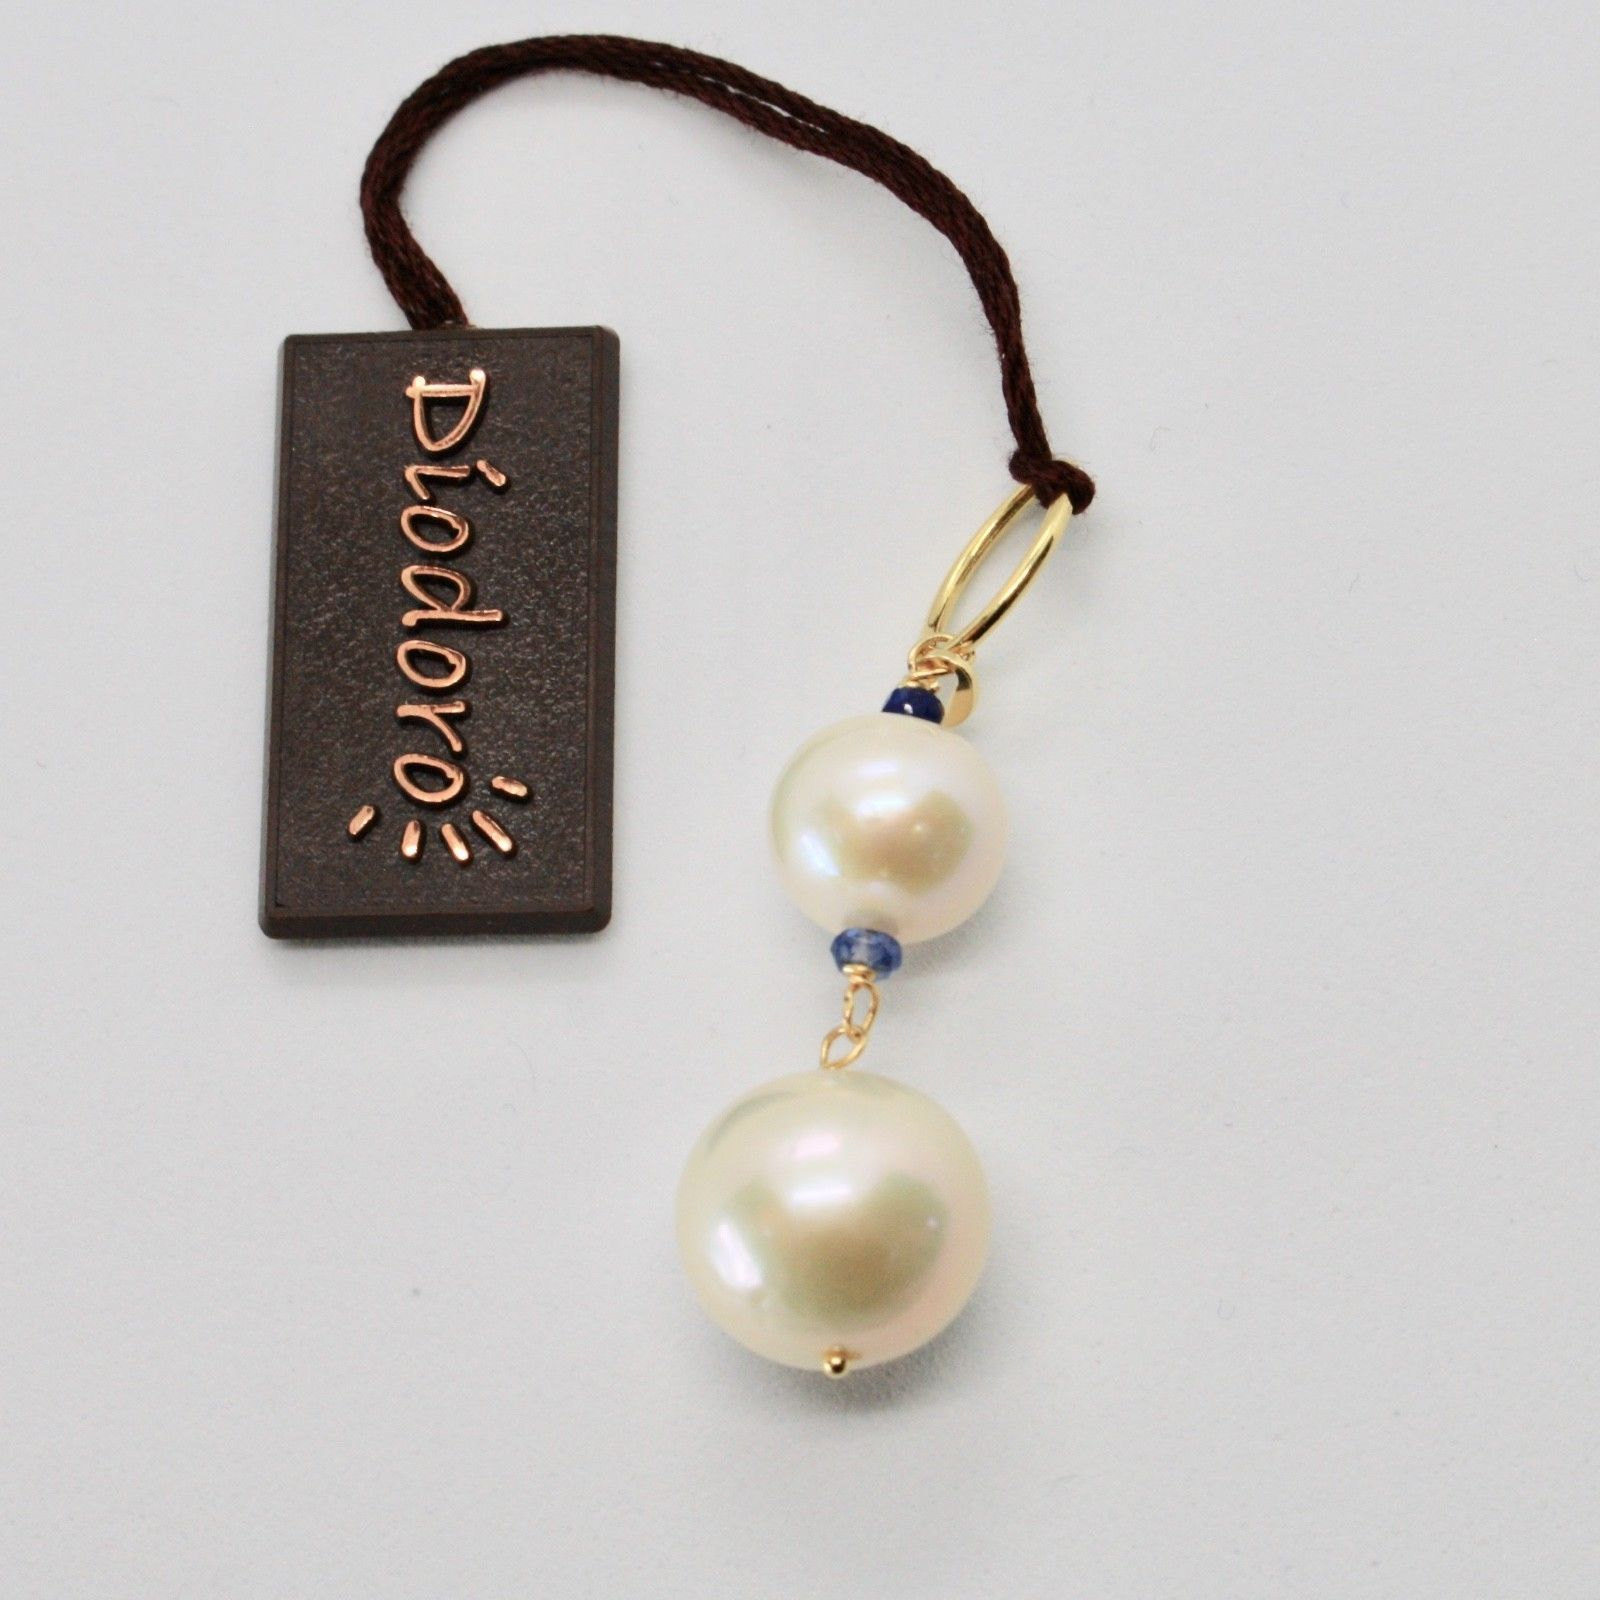 PENDANT YELLOW GOLD 18KT WITH WHITE PEARLS OF WATER DOLCE AND SAPPHIRES NATURAL